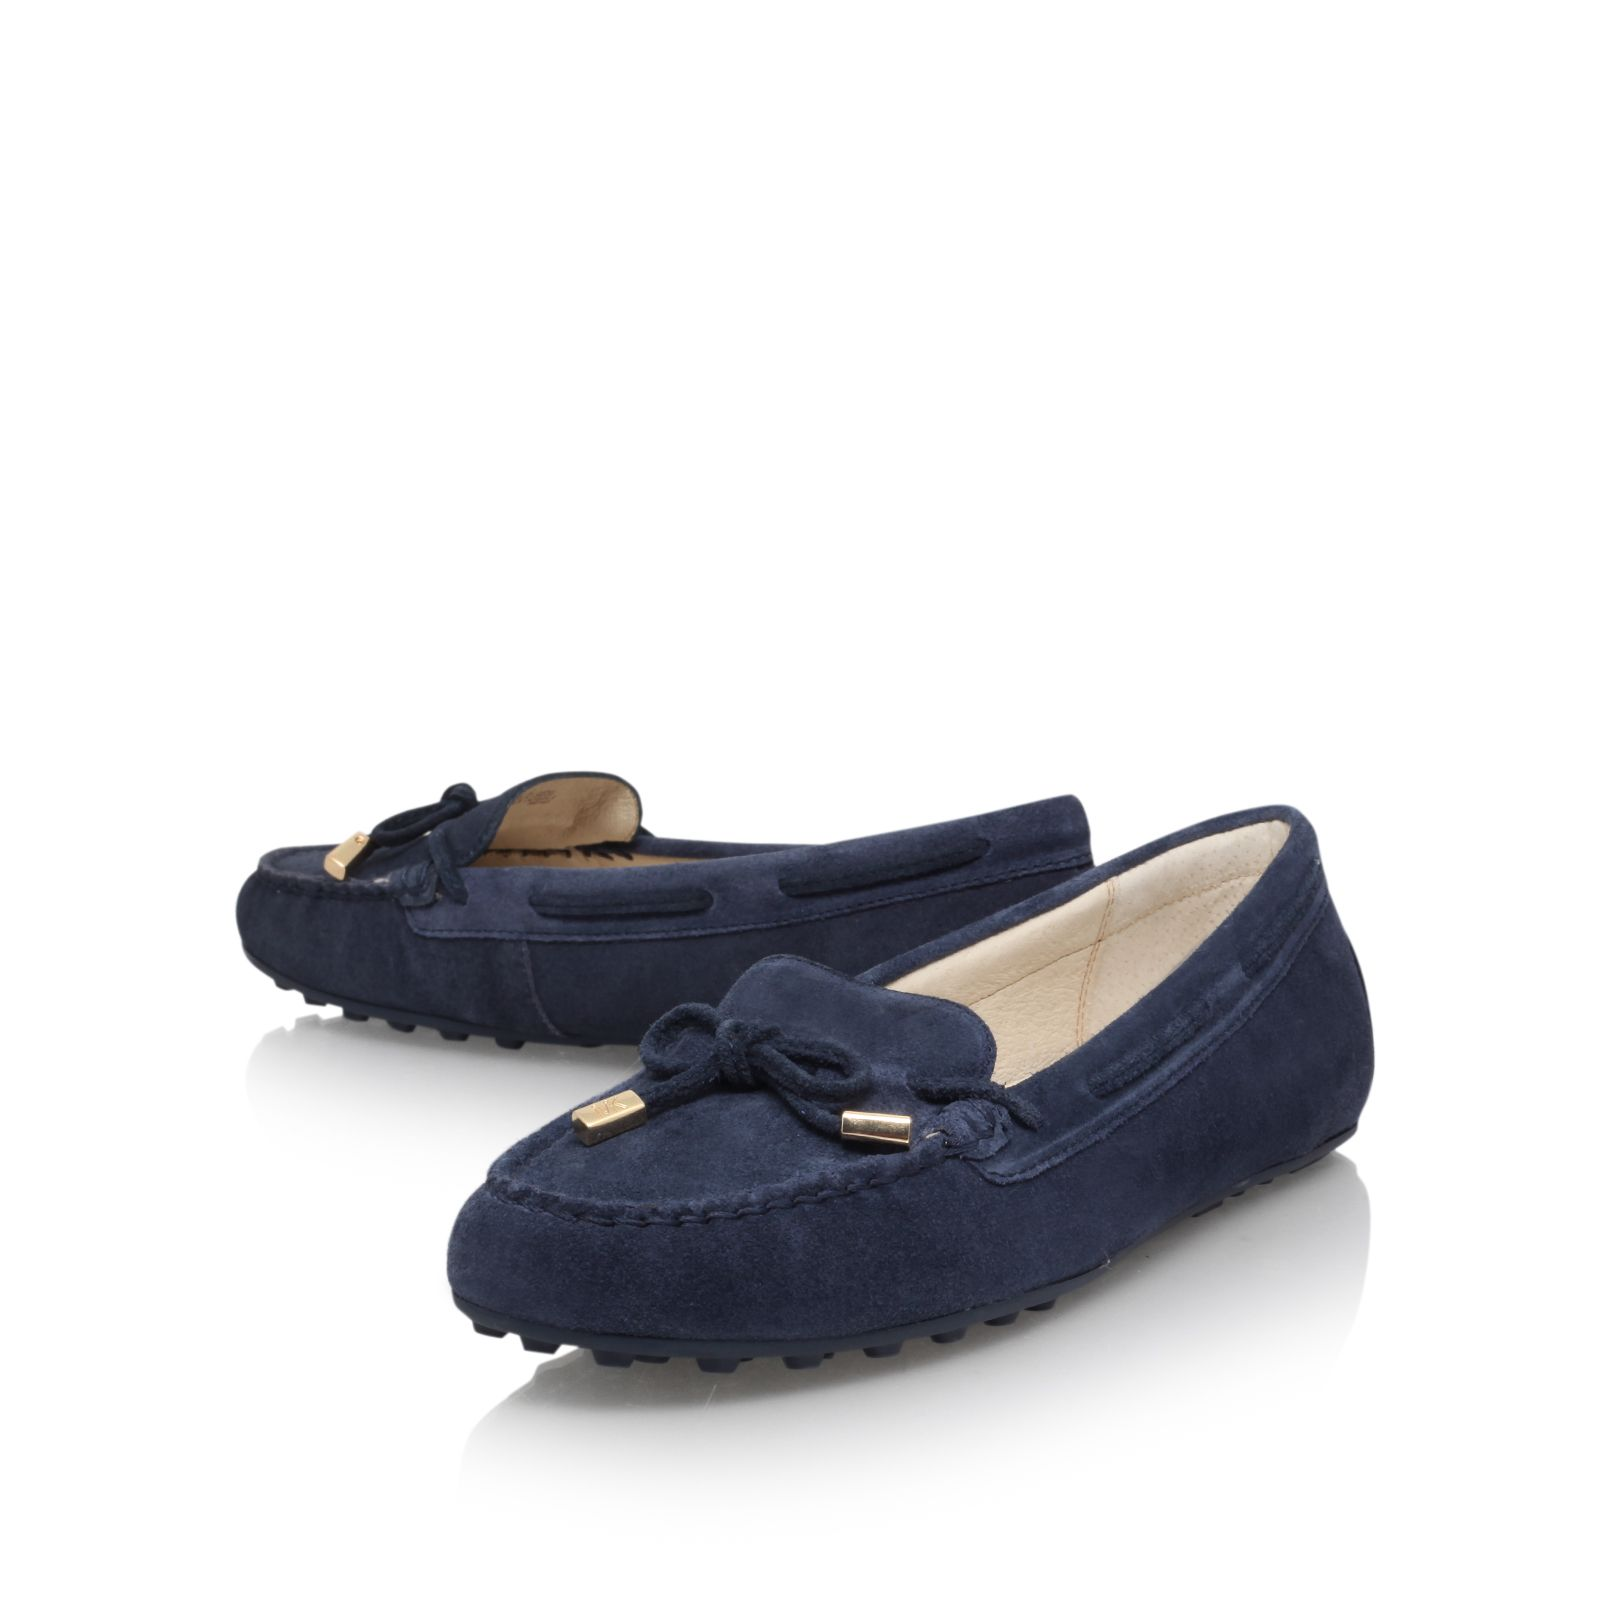 Daisy moc leather loafer